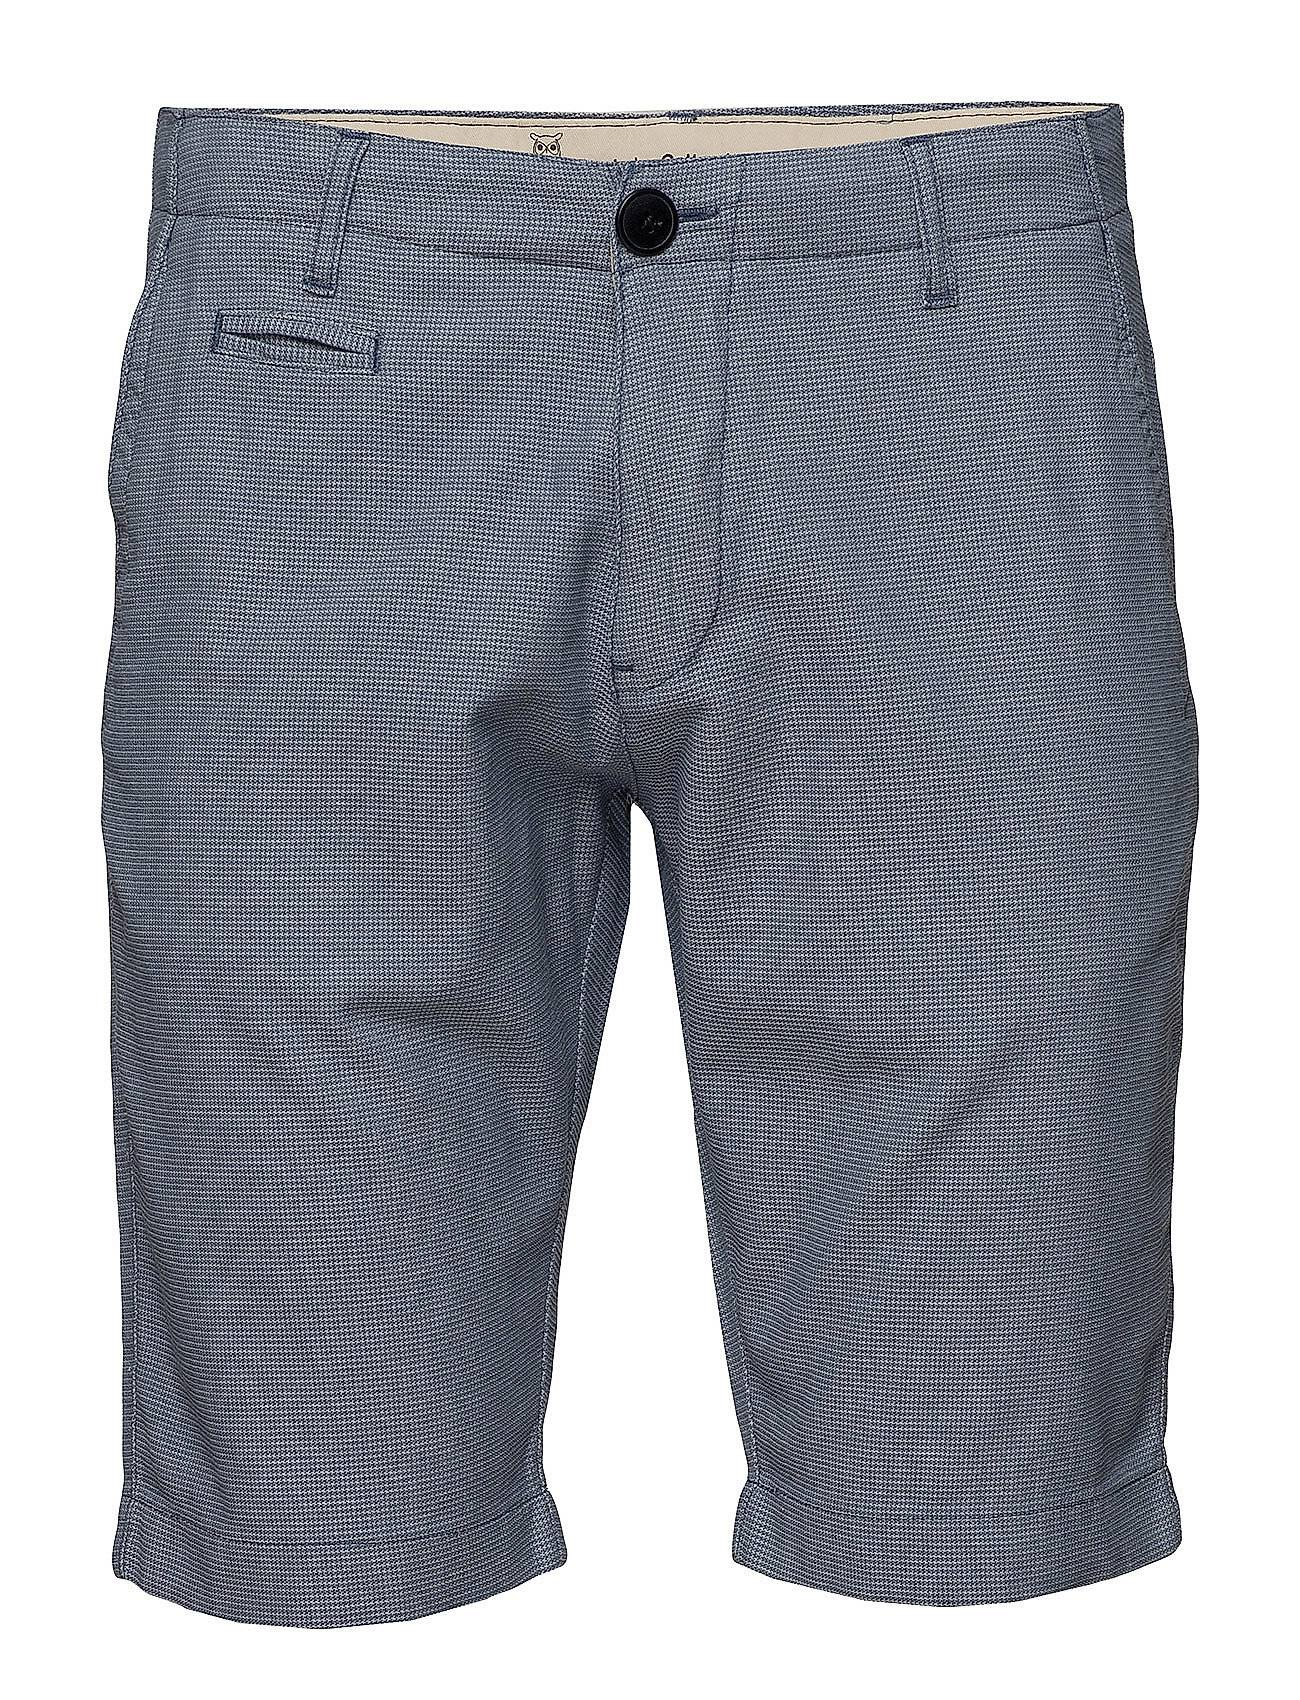 Knowledge Cotton Apparel Two Col. Shorts - Gots